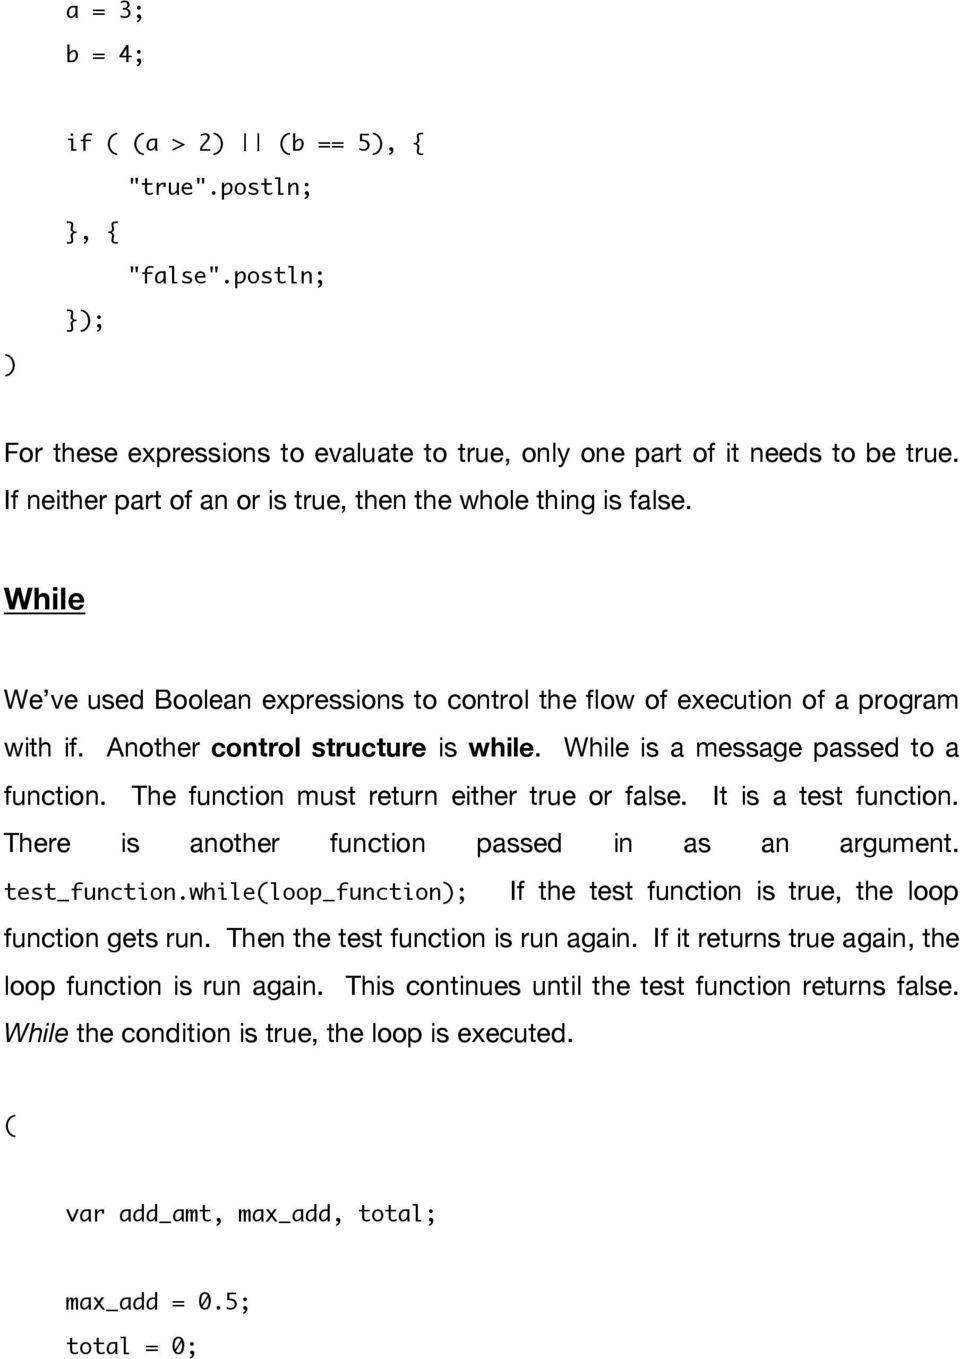 The function must return either true or false. It is a test function. There is another function passed in as an argument. test_function.